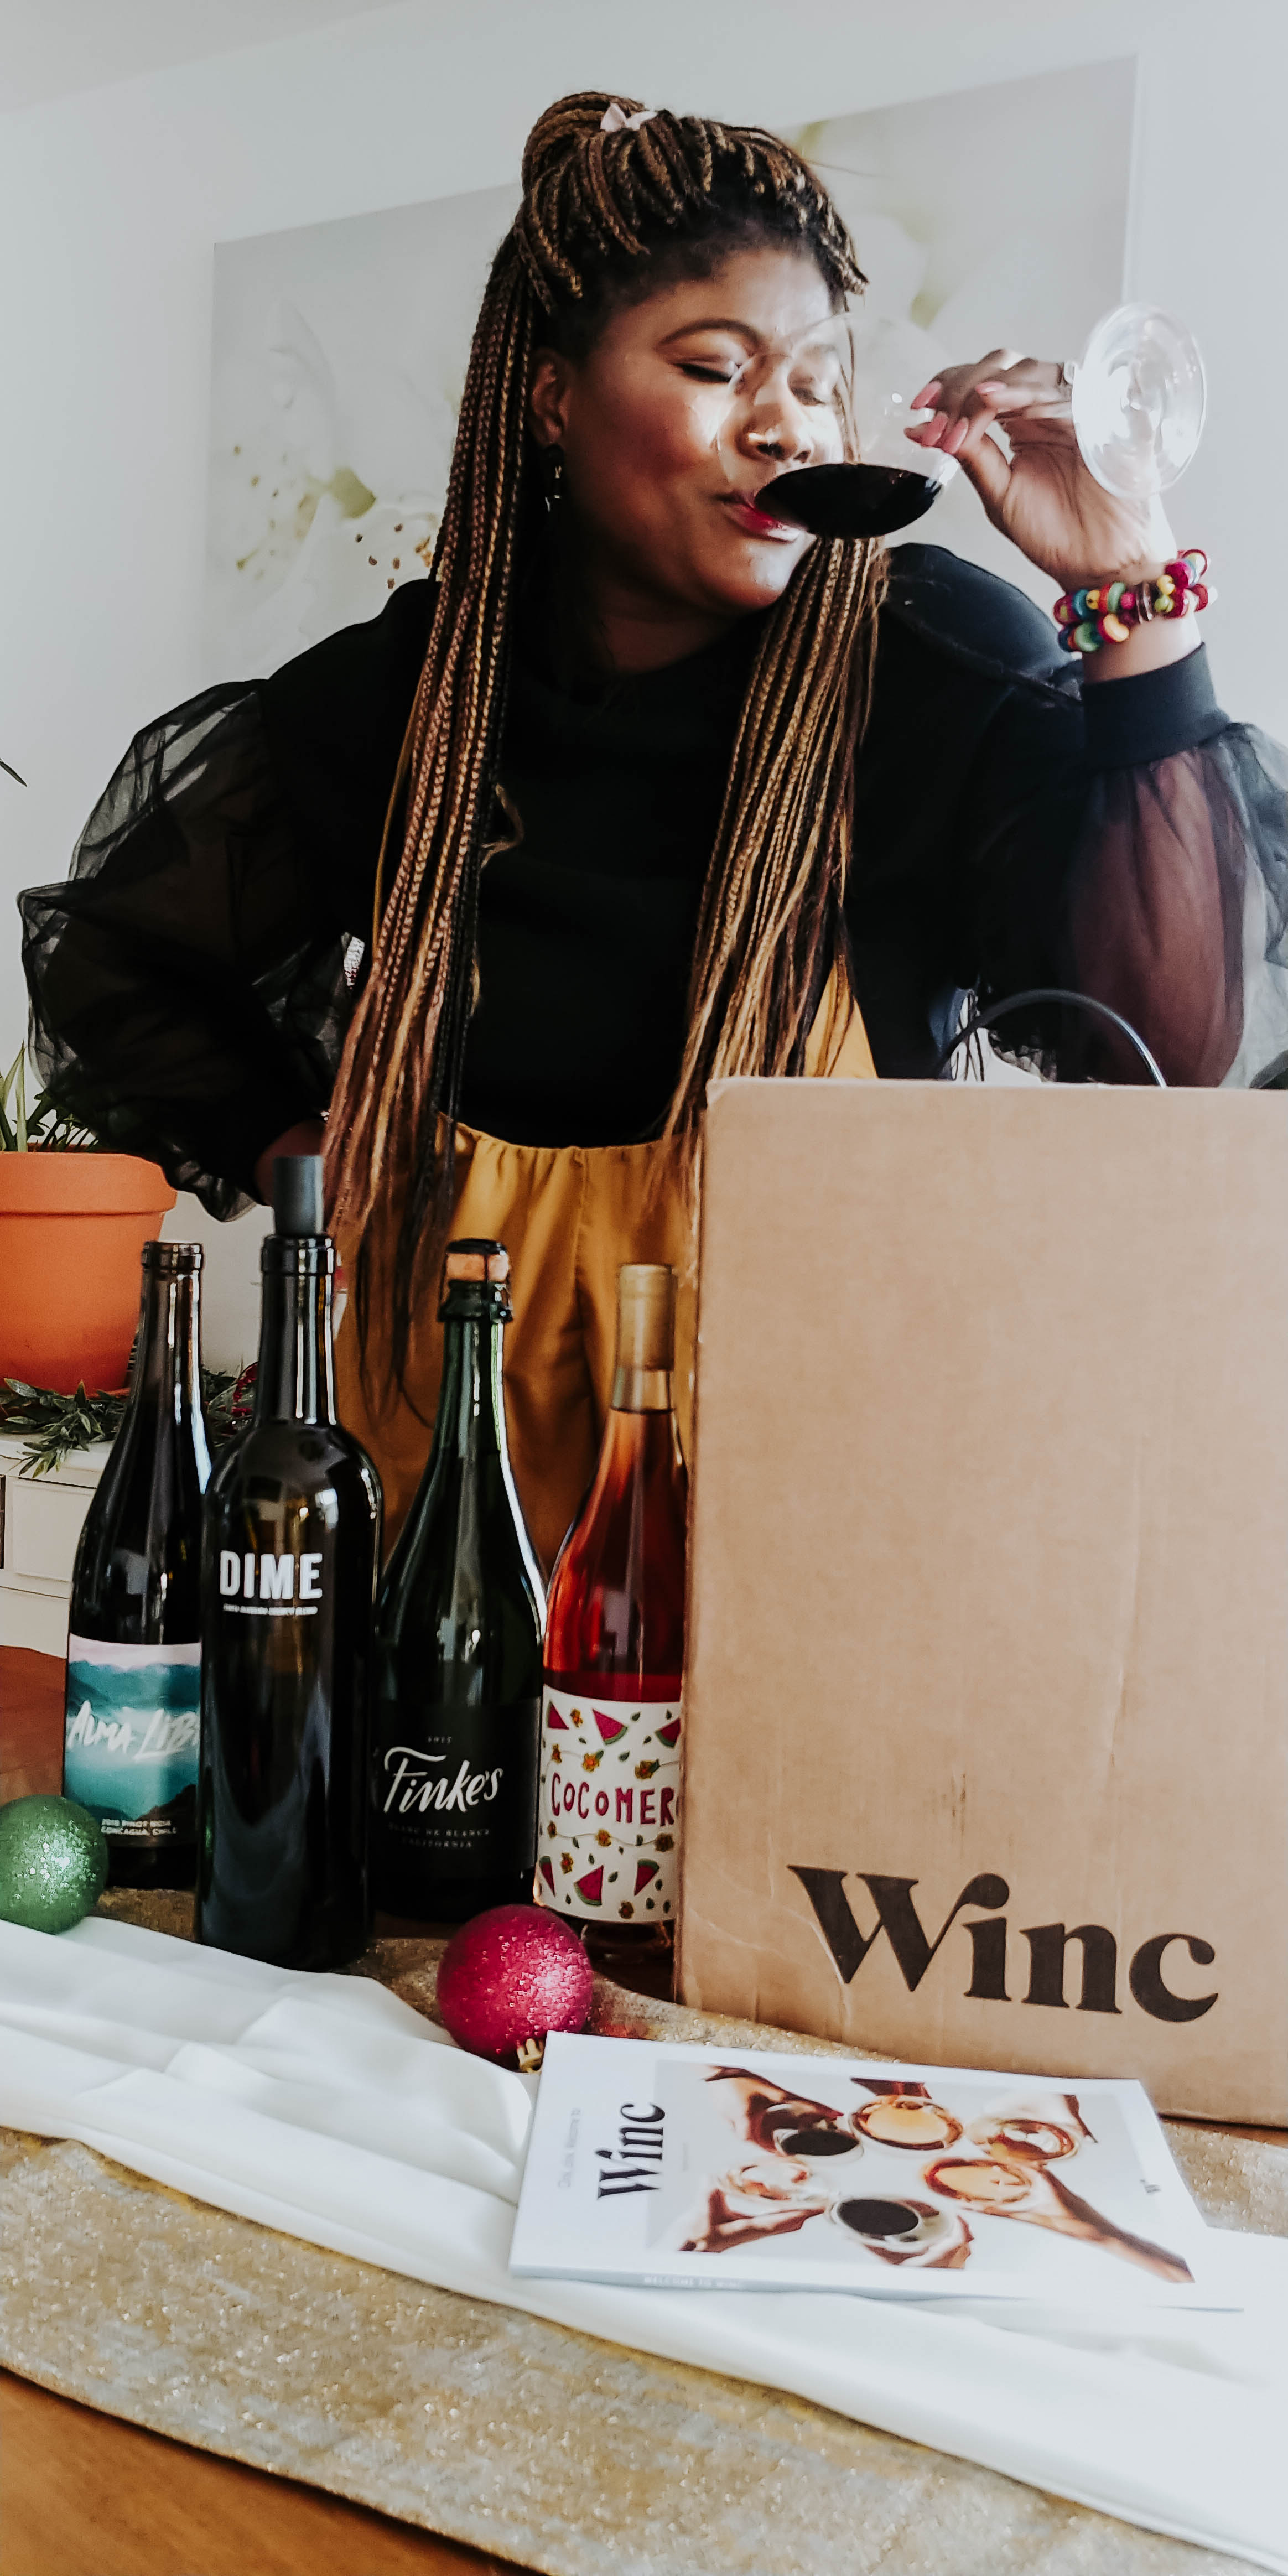 Image of Glory drinking wine and bottles of wine from winc.com.